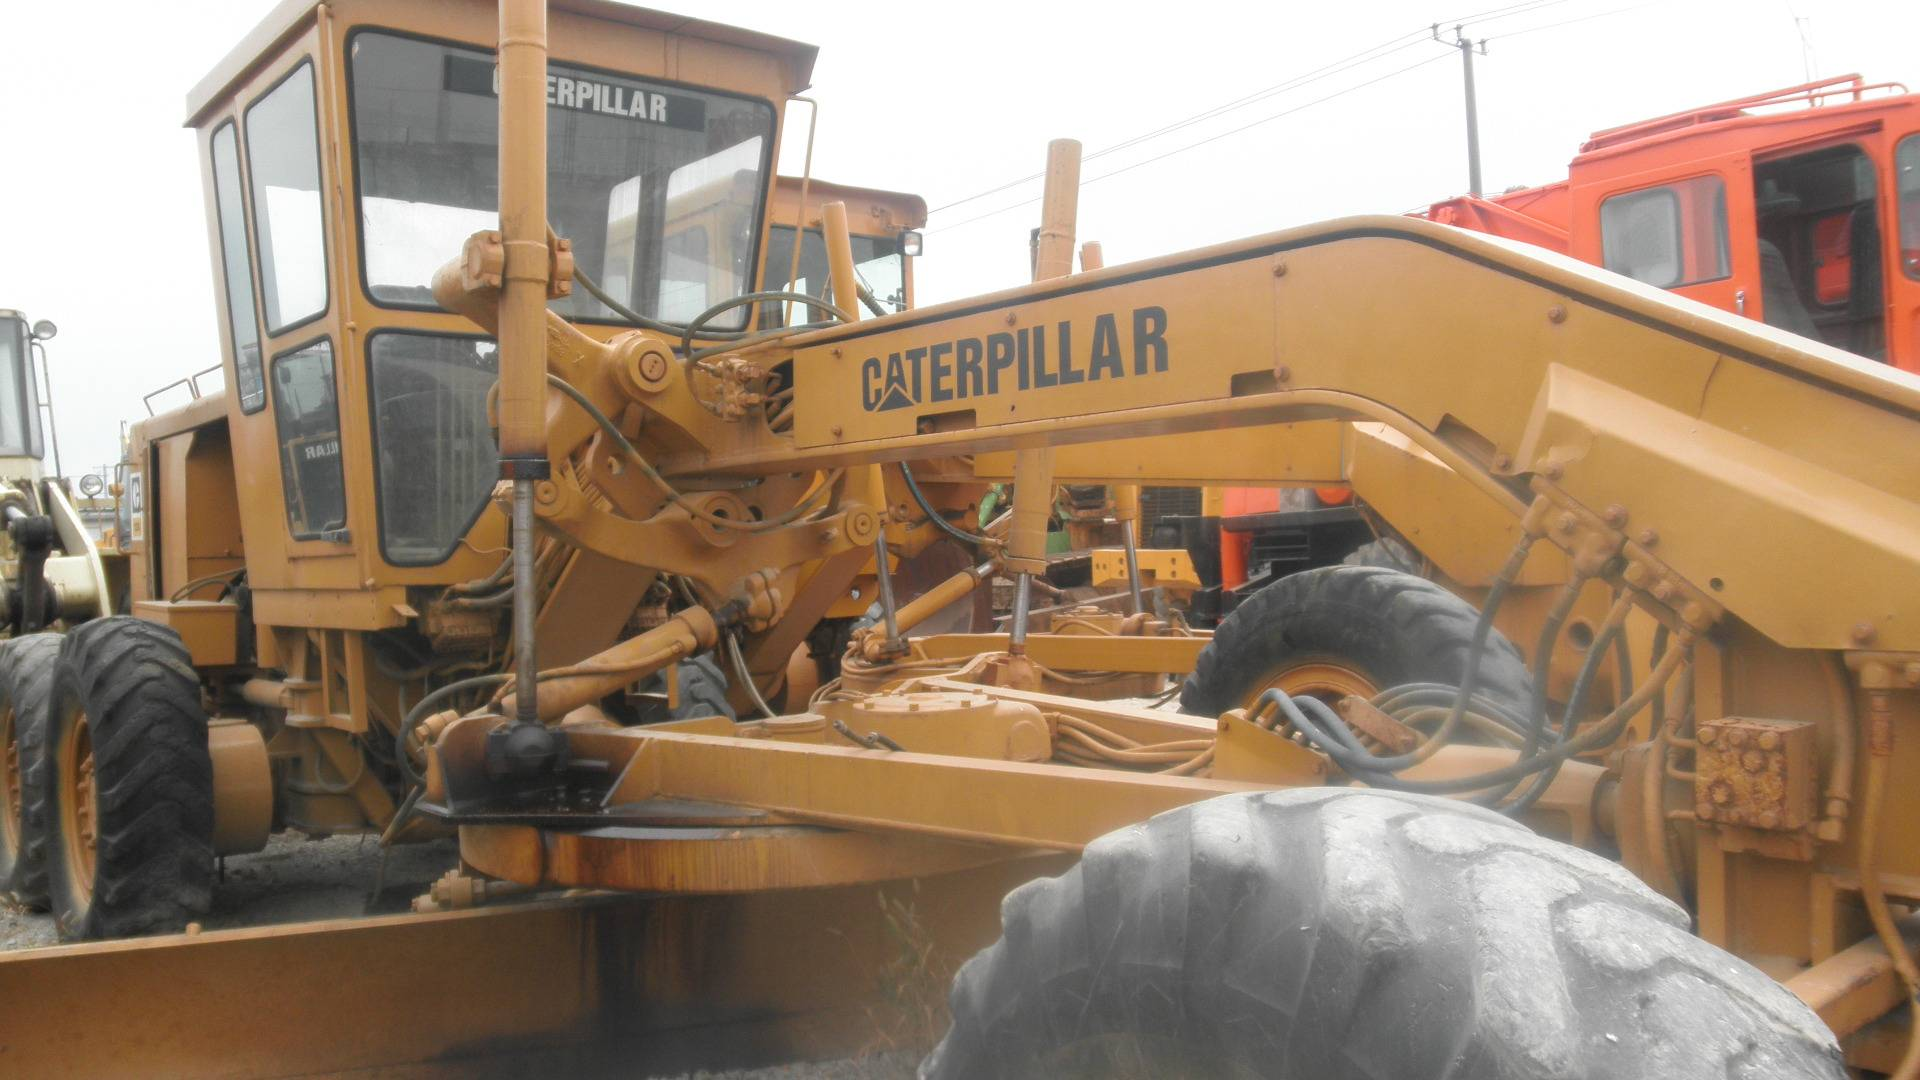 Used Cat 12G grader in good conditon for sale